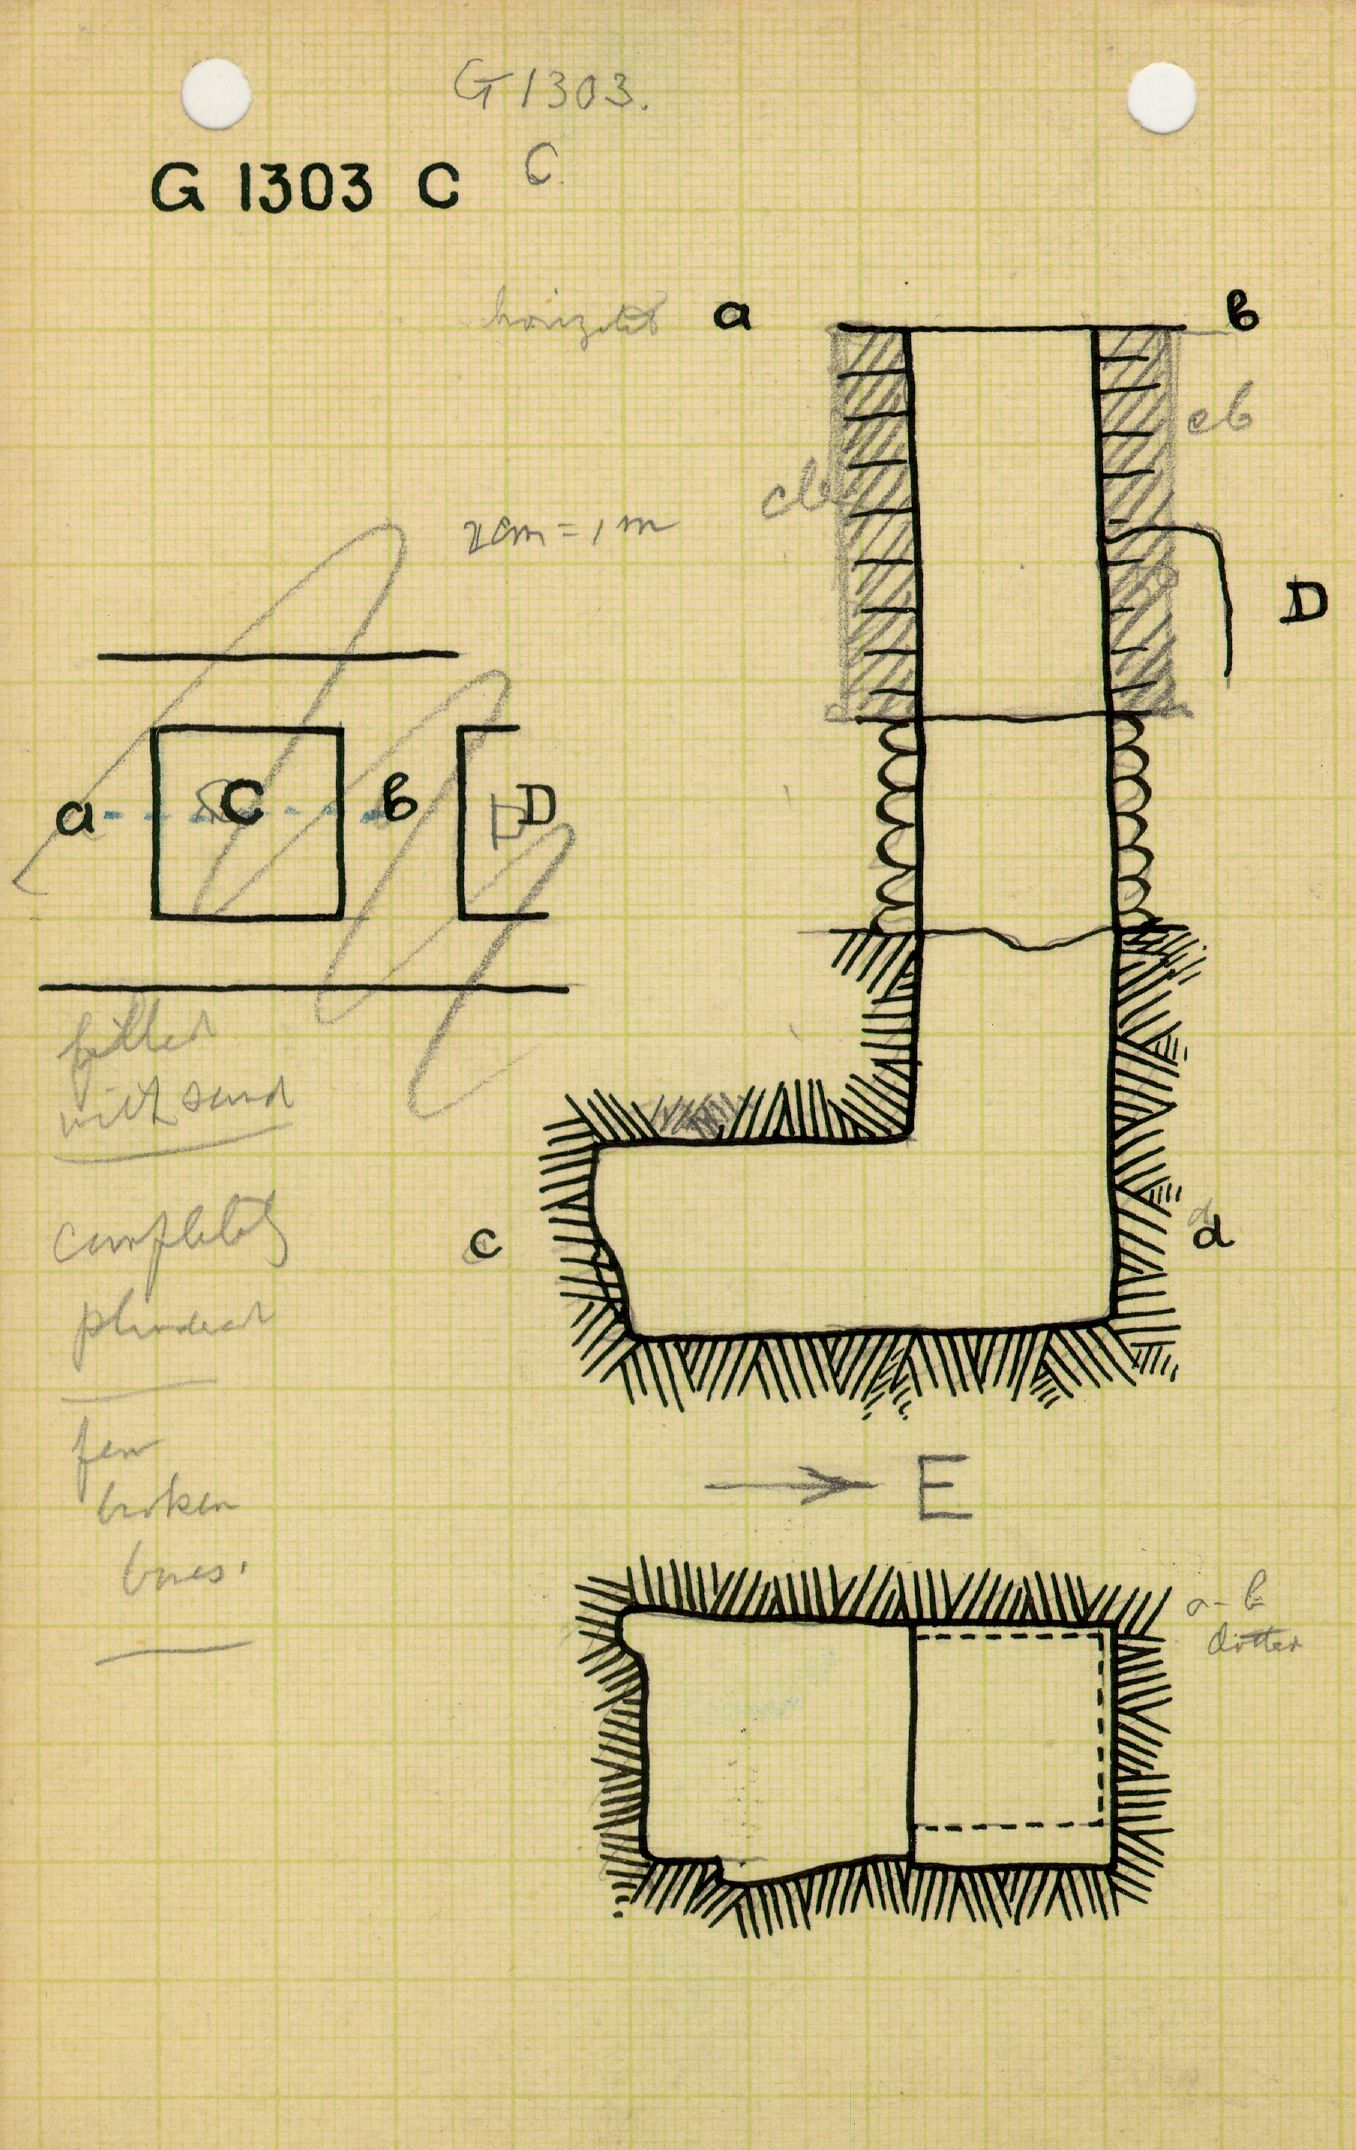 Maps and plans: G 1303, Shaft C